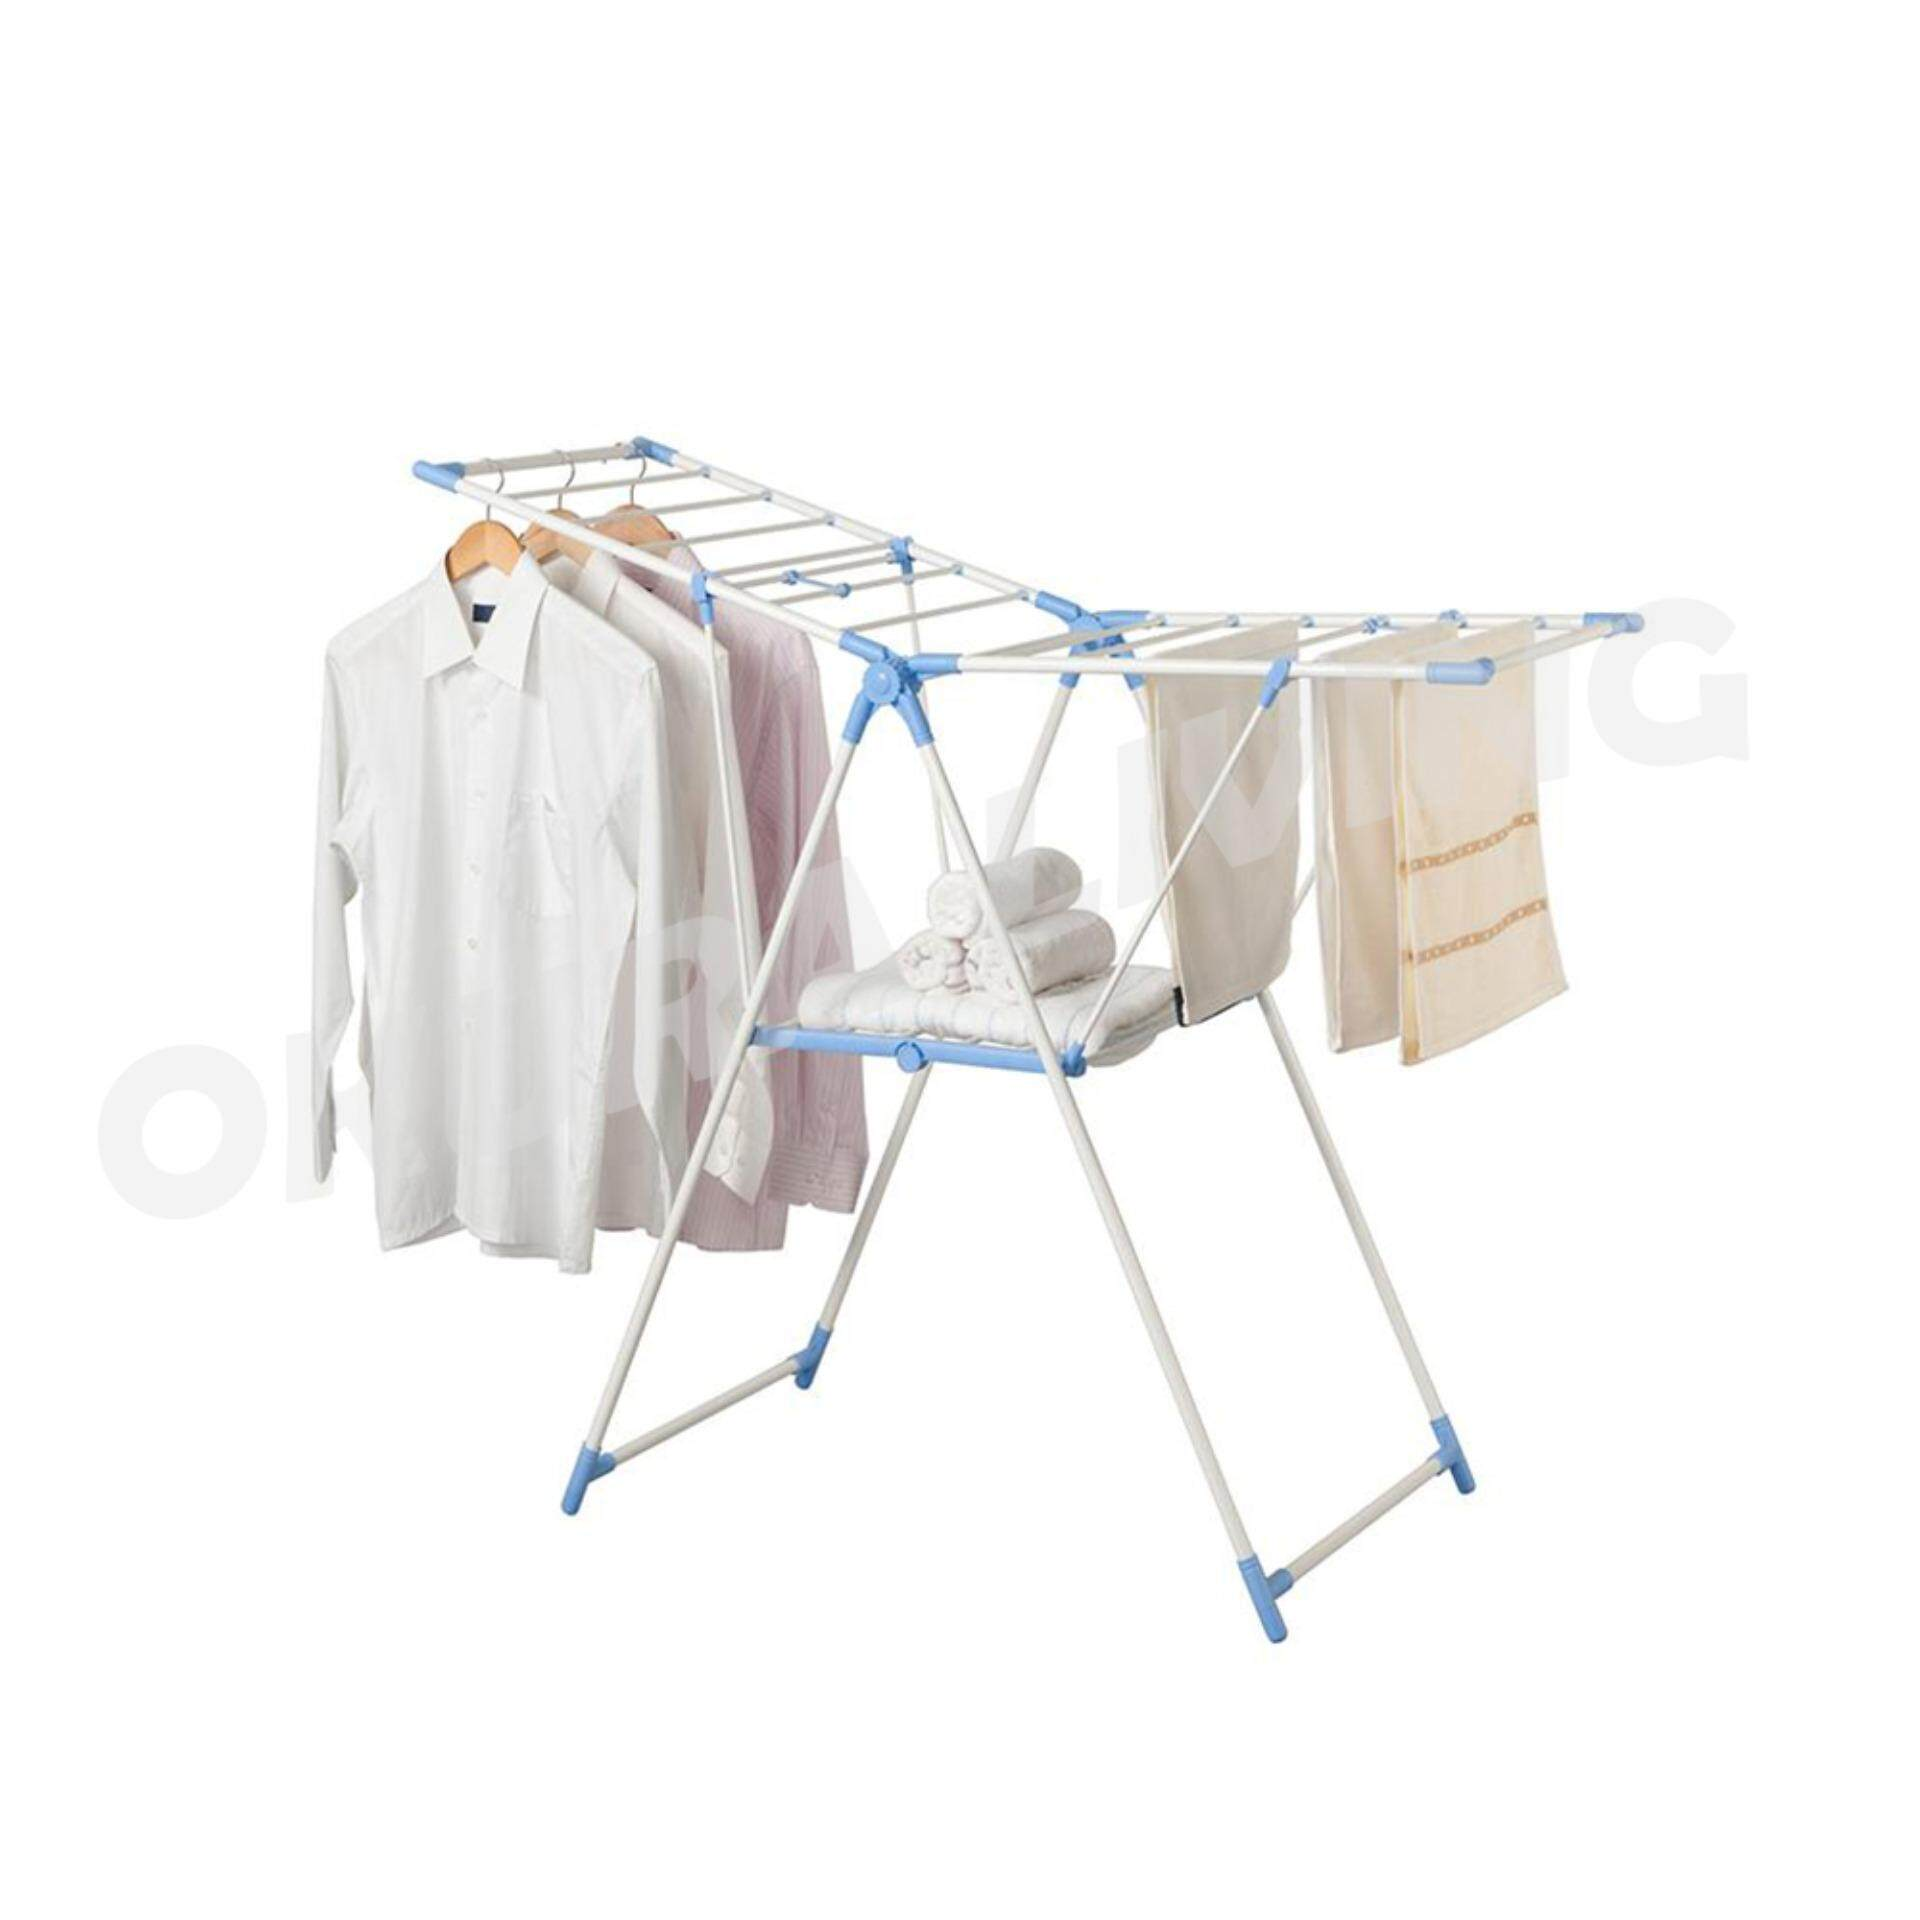 Okura Laundry Drying Rack Double Layer Butterfly Foldable Cloth Hanger Cloth Dryer